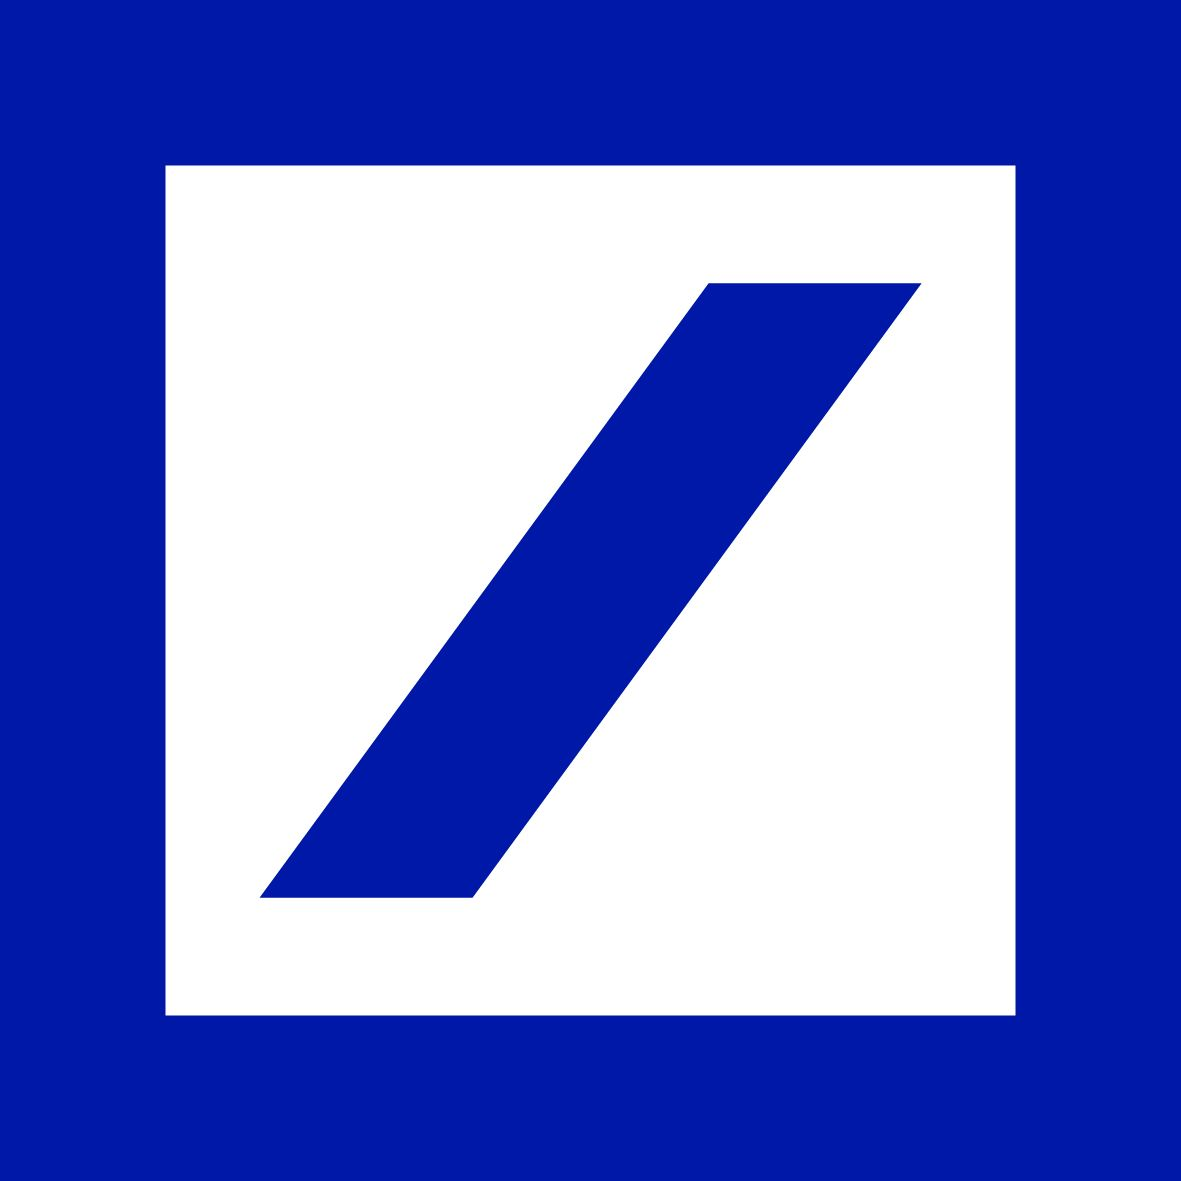 logo_square_rgb-deutschebank